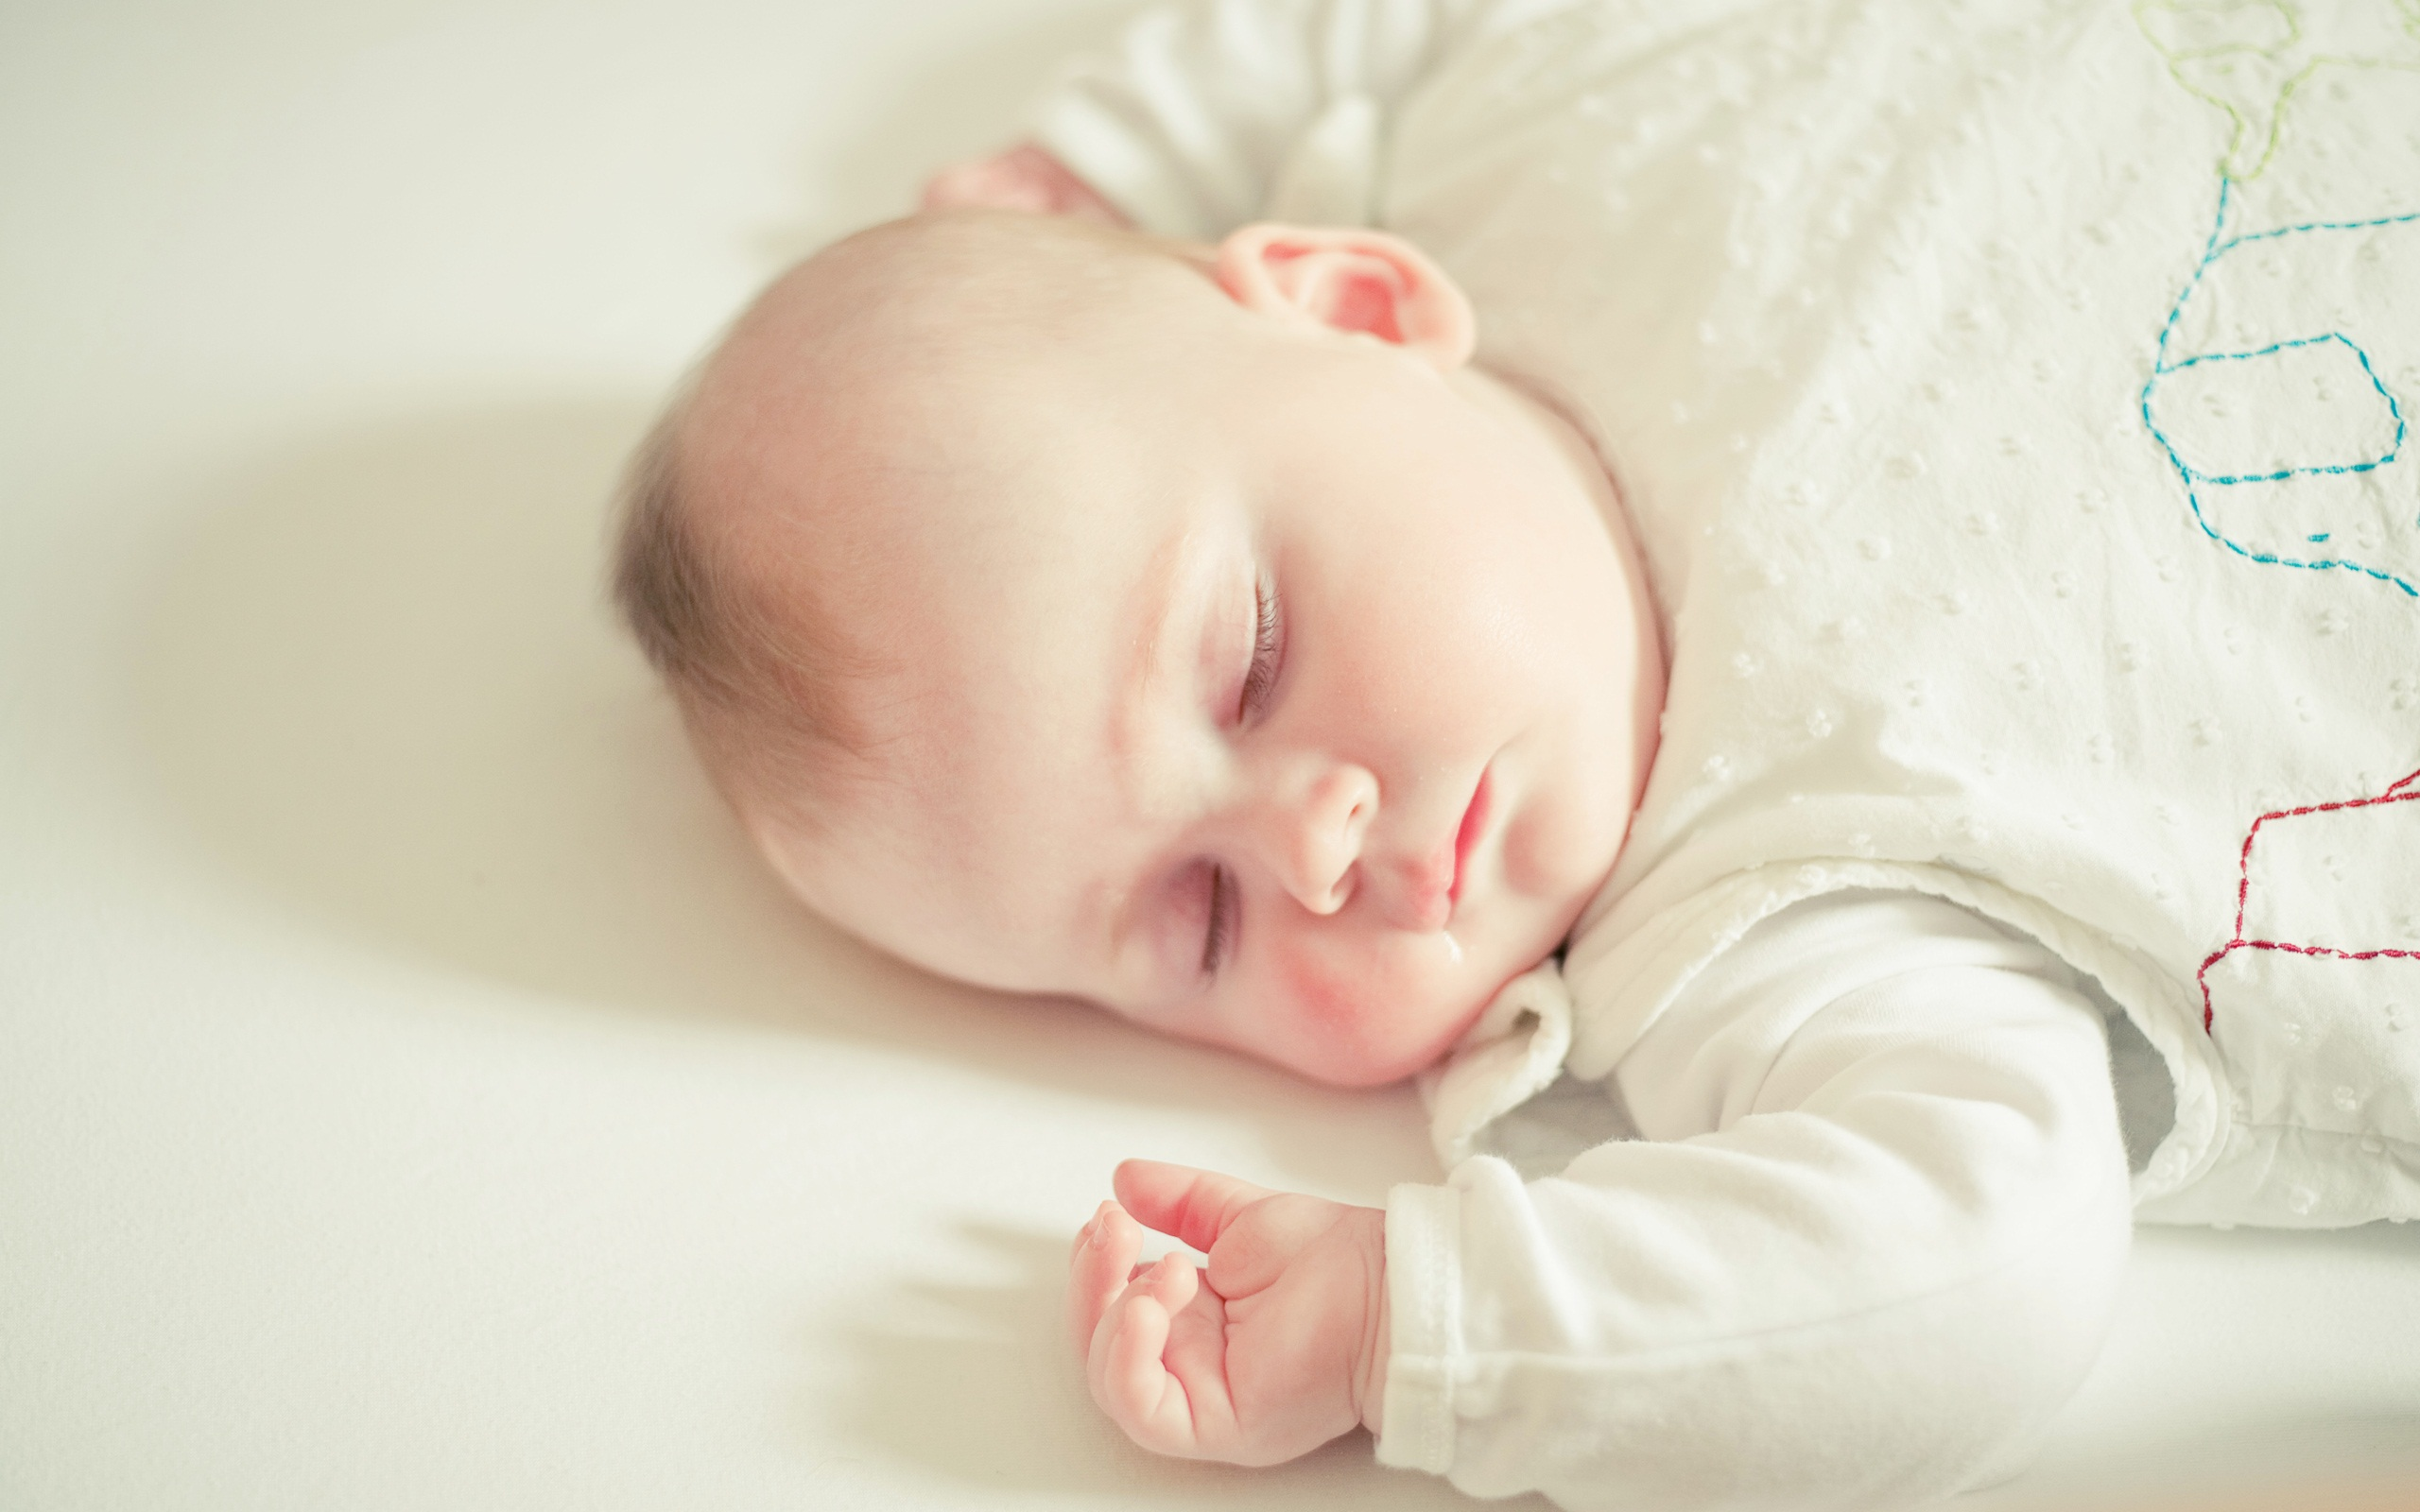 Cute Babies Sleeping Images: Page 8 Of Cute Wallpapers, Photos And Desktop Backgrounds